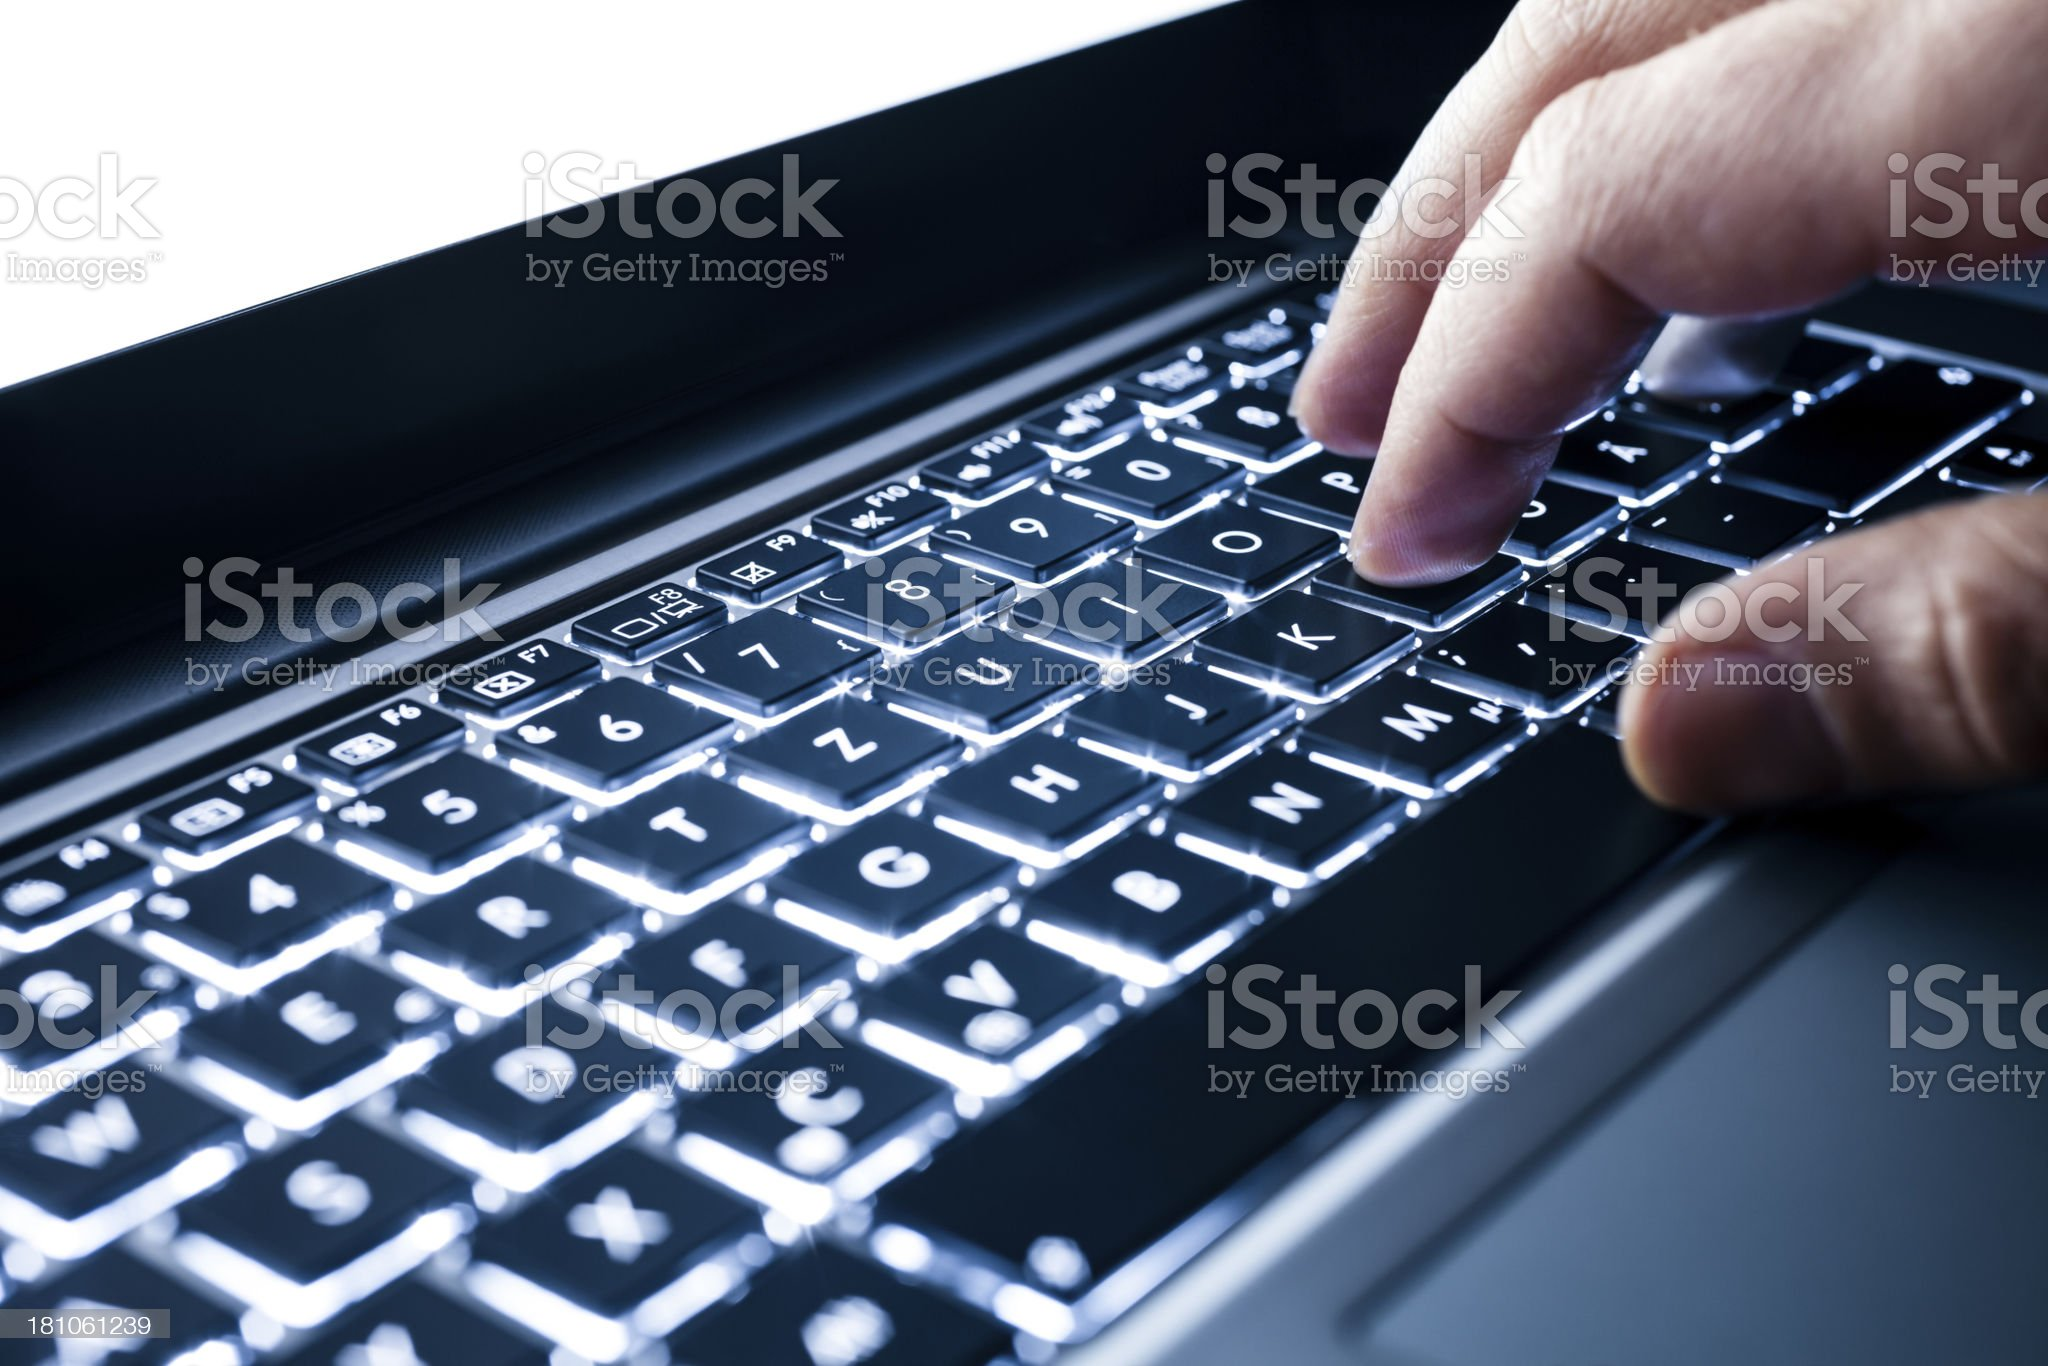 Working on illuminated laptop - Keyboard Hand Typing royalty-free stock photo